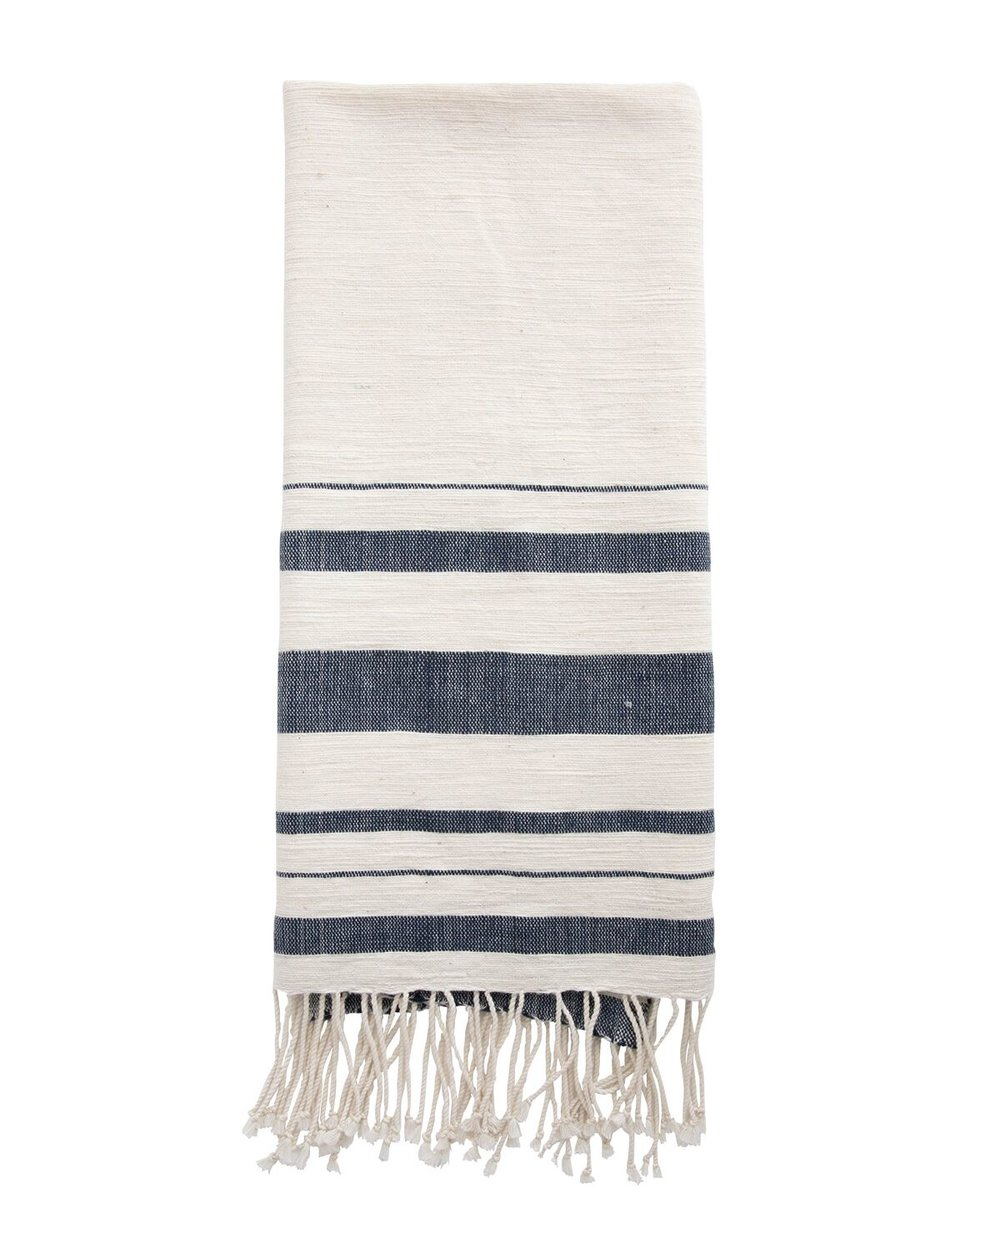 Upton Stripe Hand Towel 1_preview.jpg